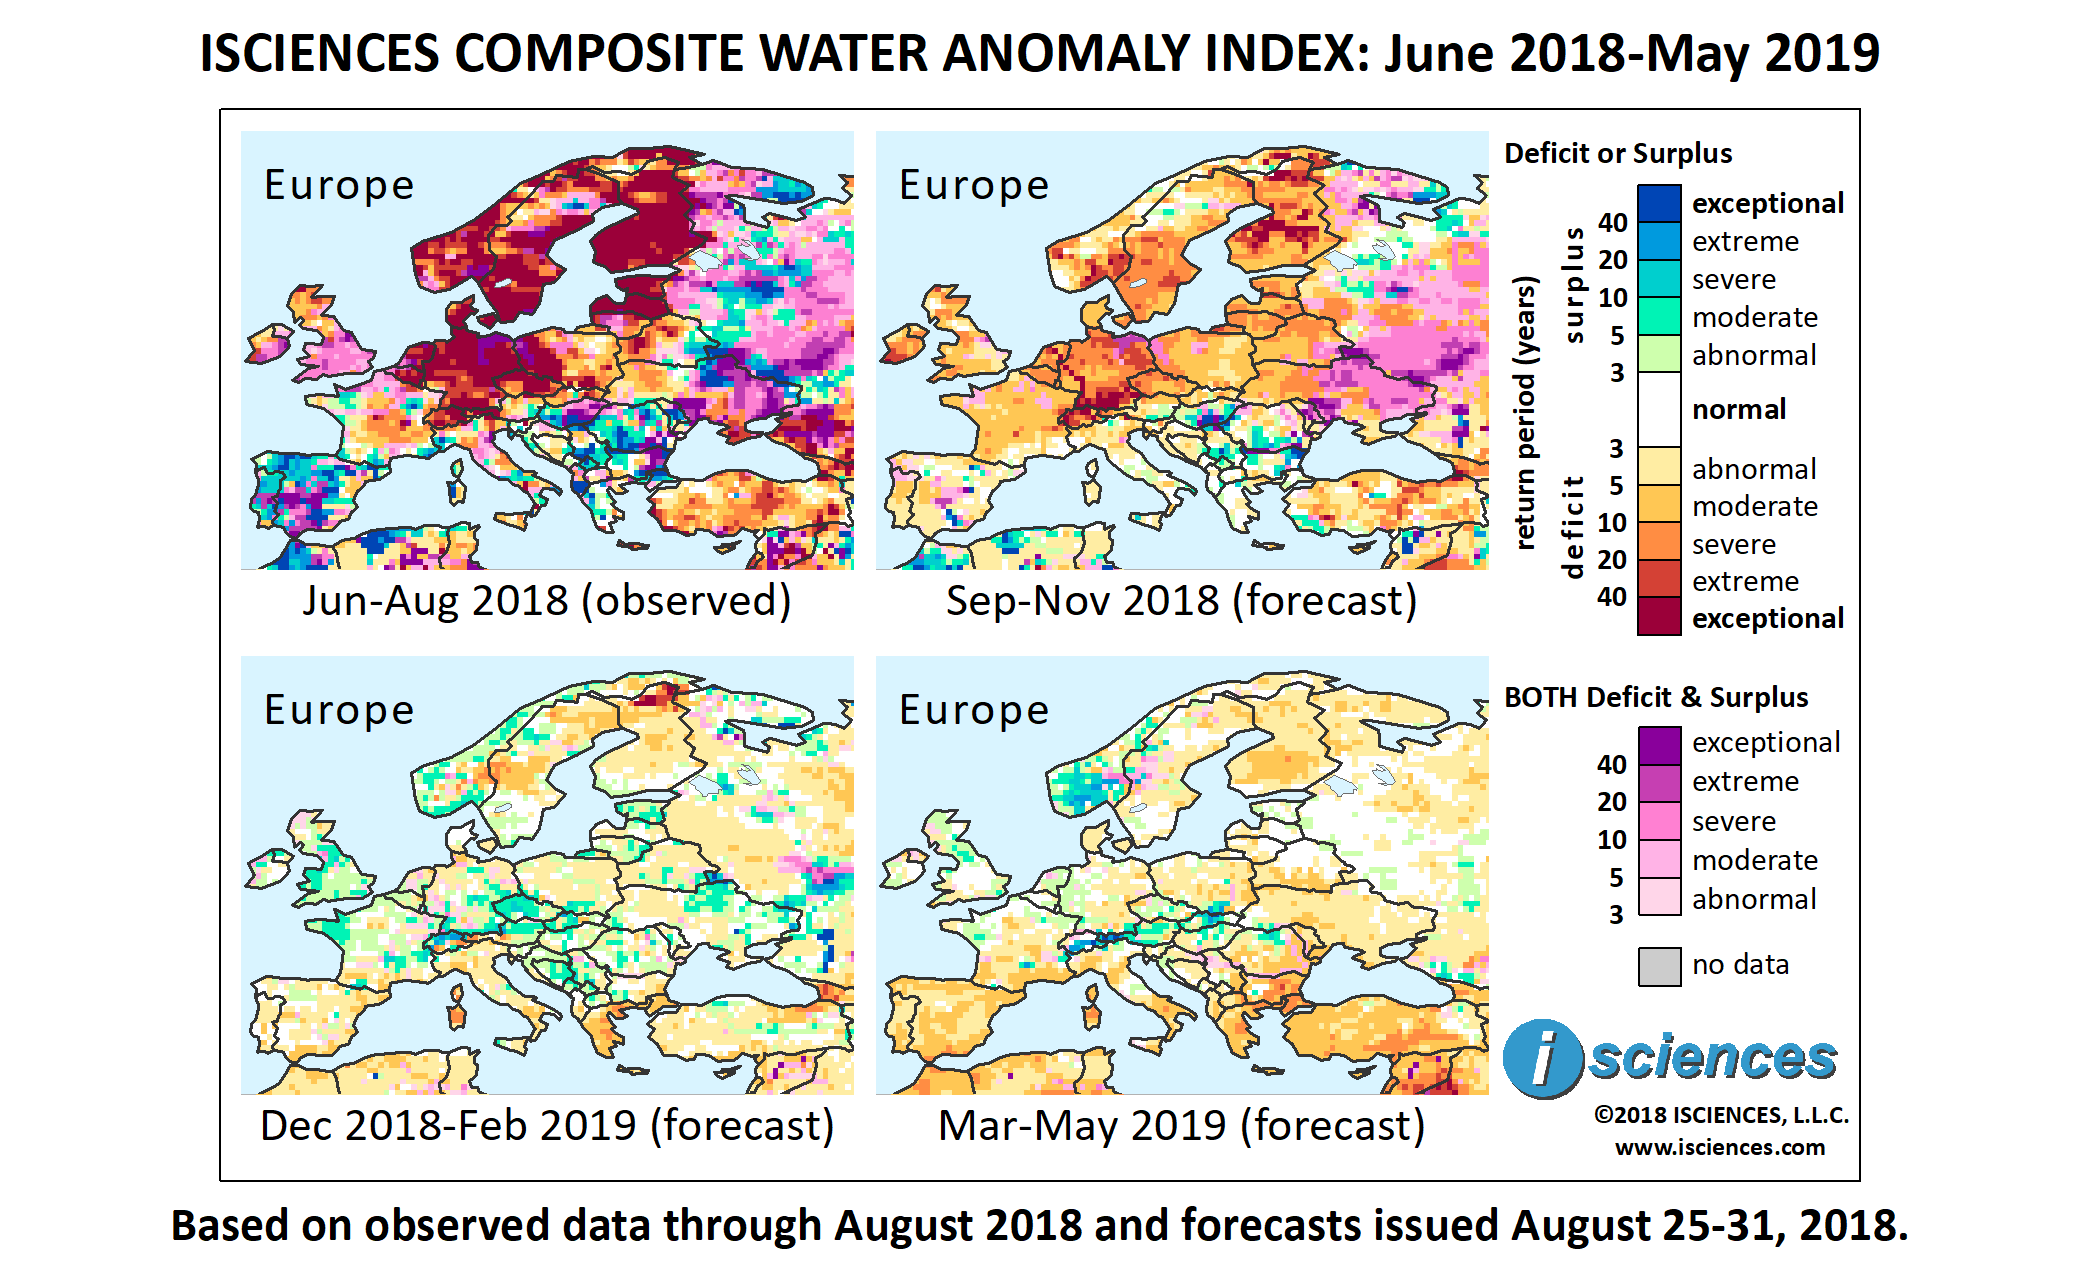 ISciences_Europe_R201808_3mo_quad_pic.png